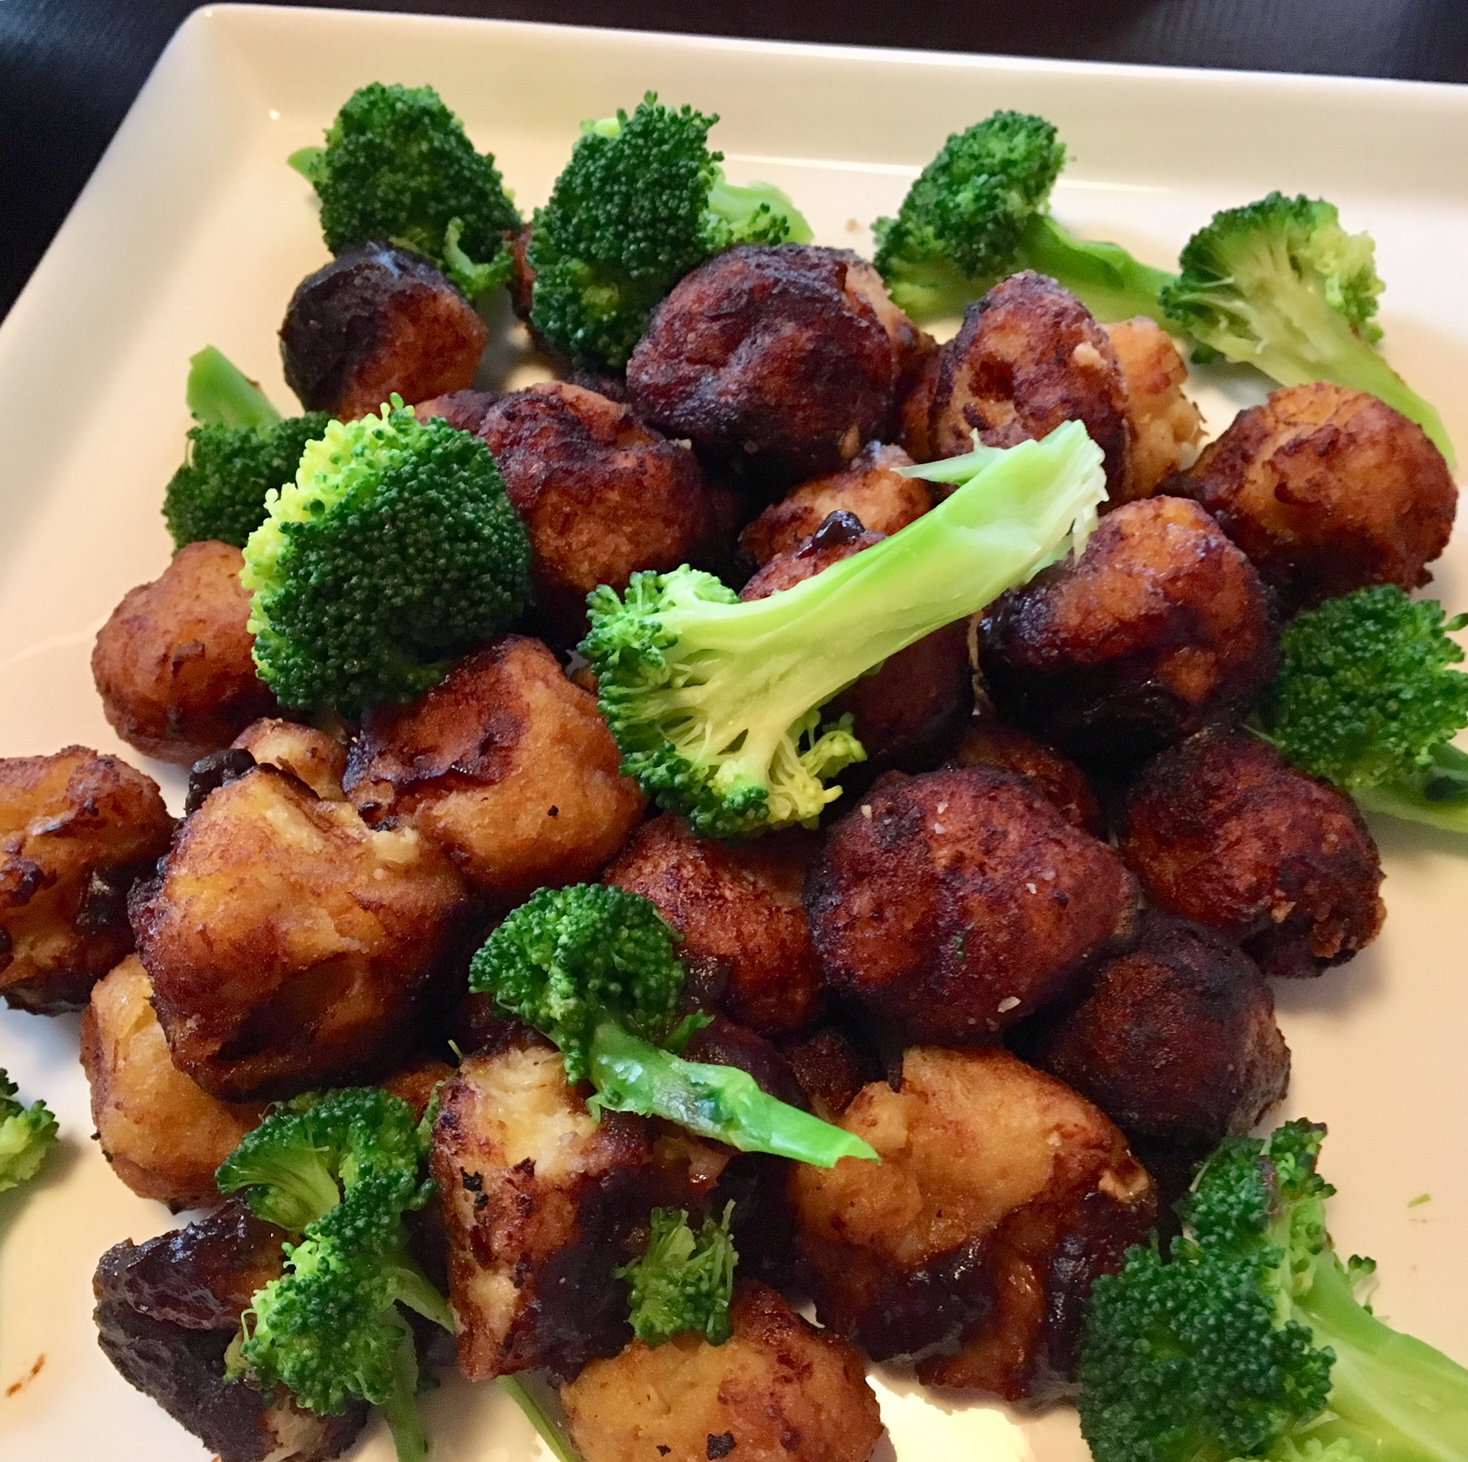 Stir-fried soybeans with broccoli